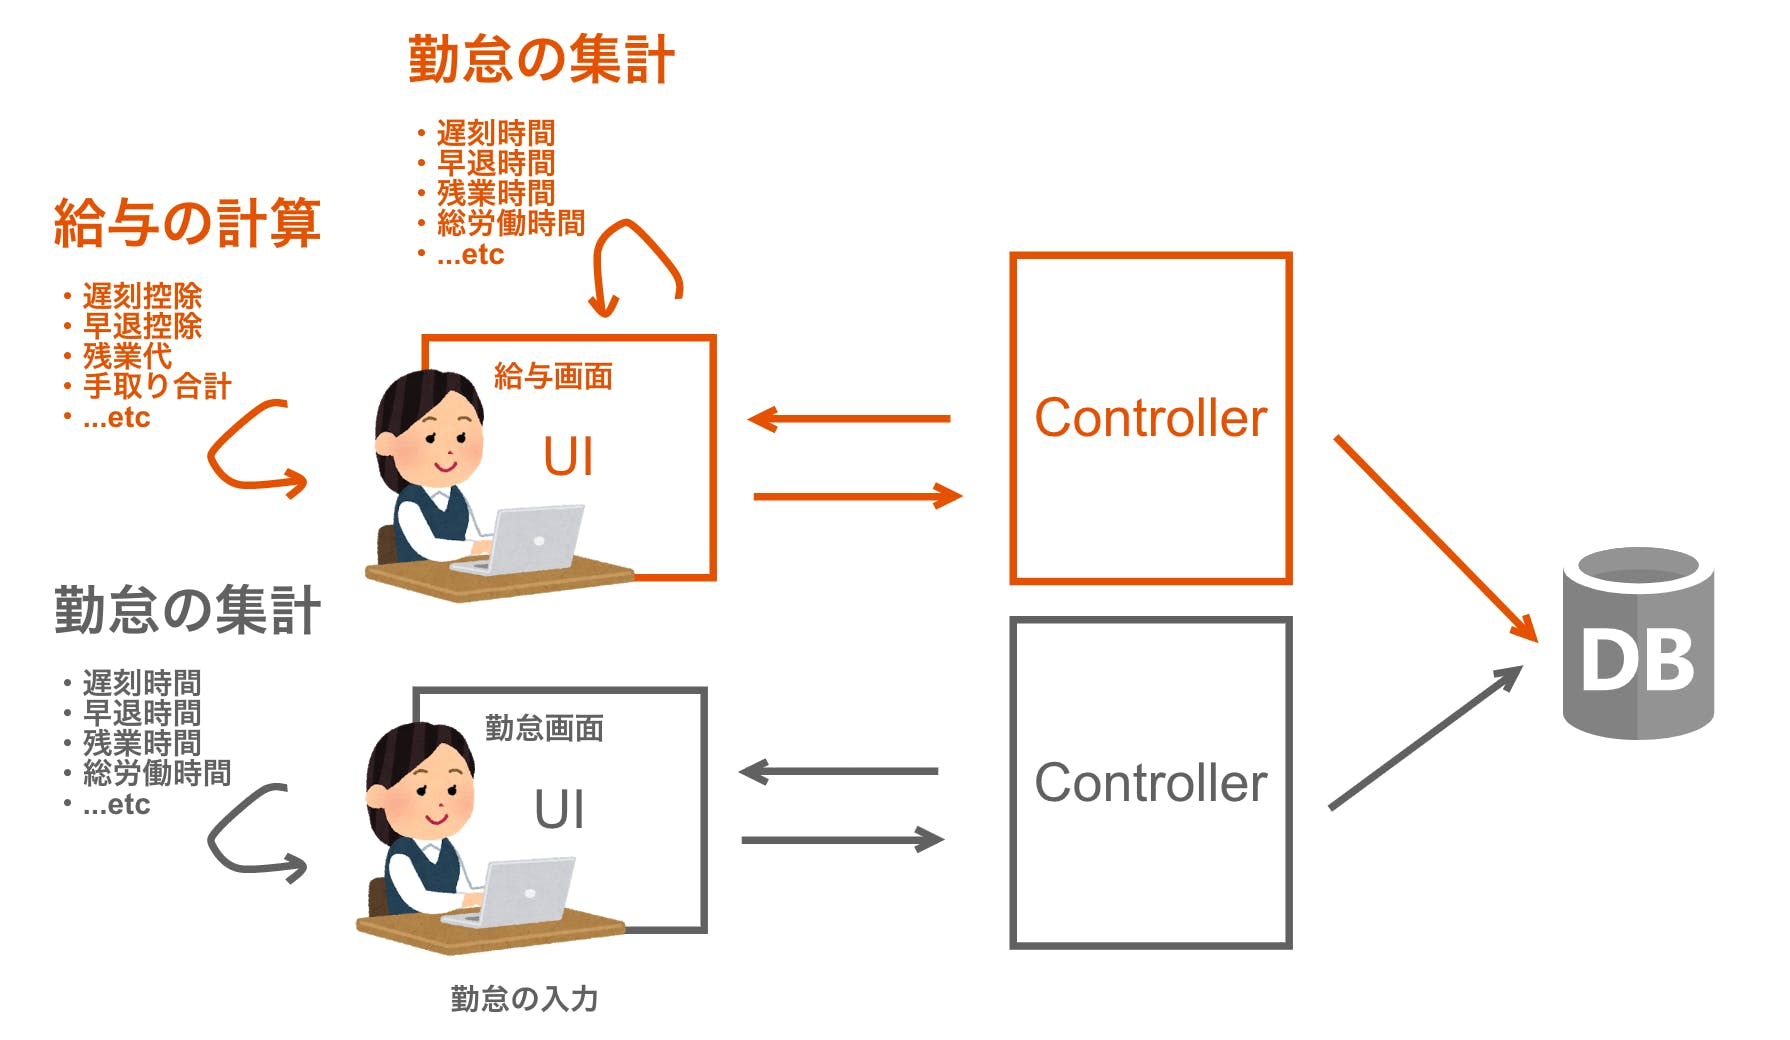 Untitled New Diagram   Cacoo (11).png